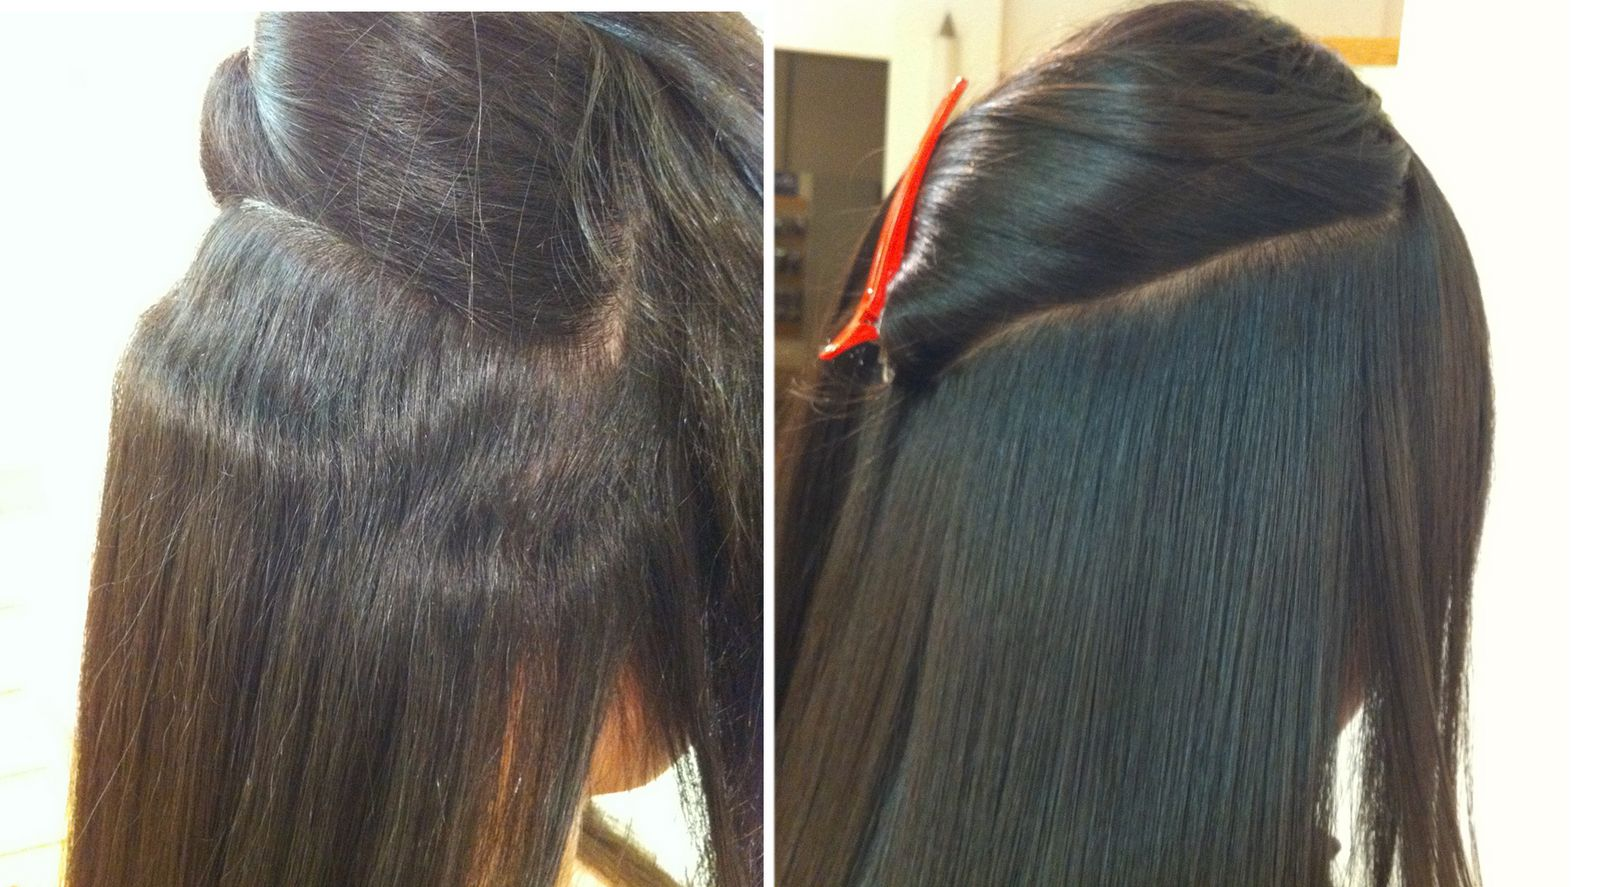 Best japanese straight perm - Japanese Hair Straightening Things To Consider Before Getting It Done